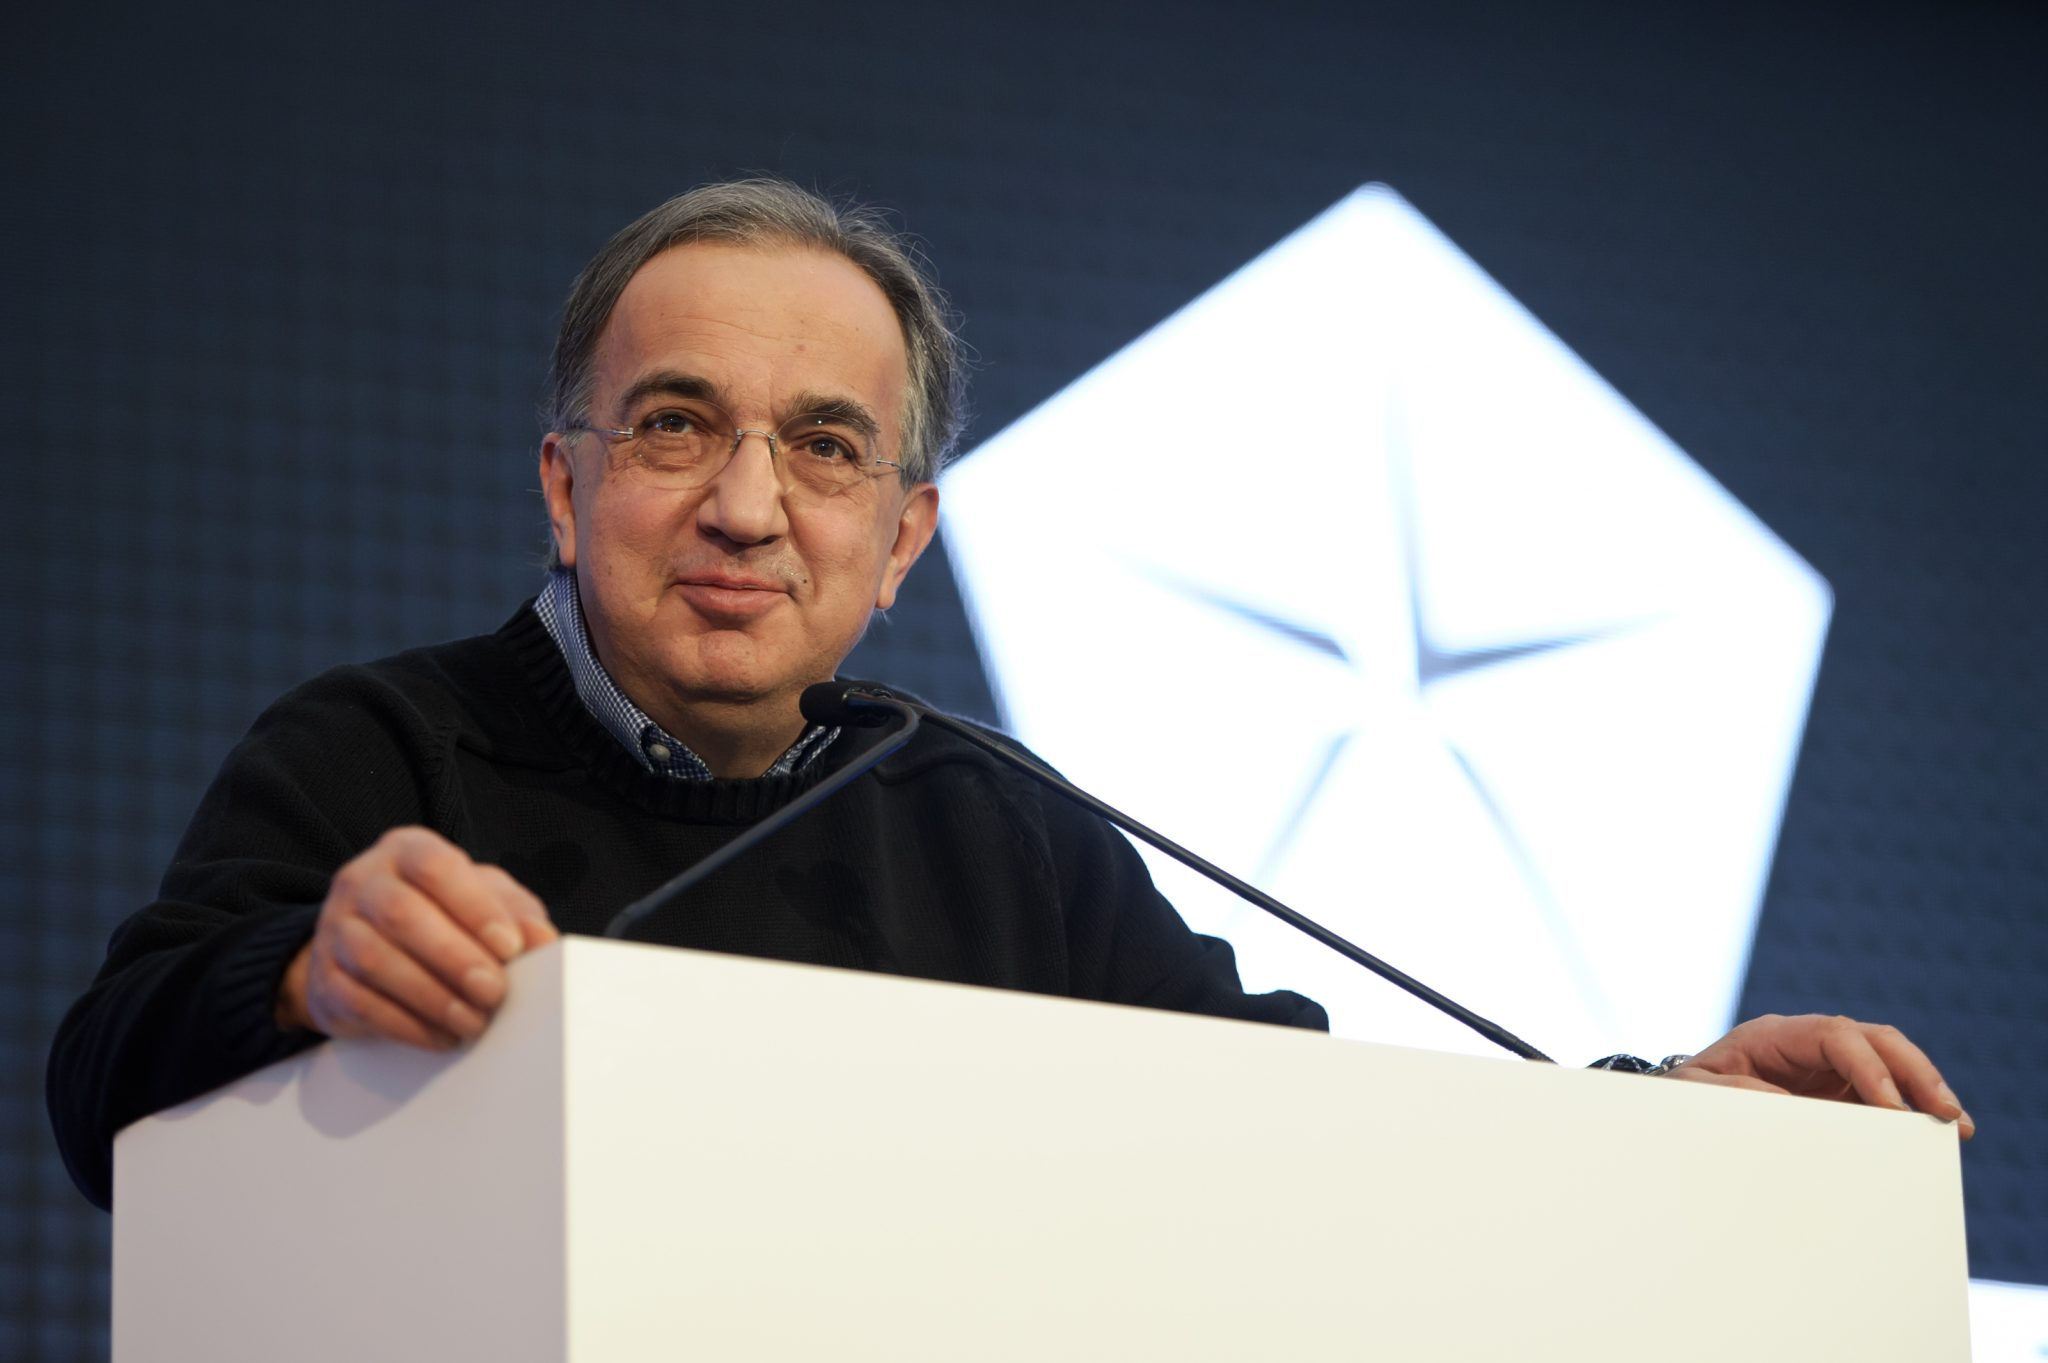 gm merger acquisition Fiat chrysler ceo sergio marchionne may have ratcheted up the rhetoric surrounding a potential merger with general motors but — at least for now — it doesn't appear his idea will be gaining.